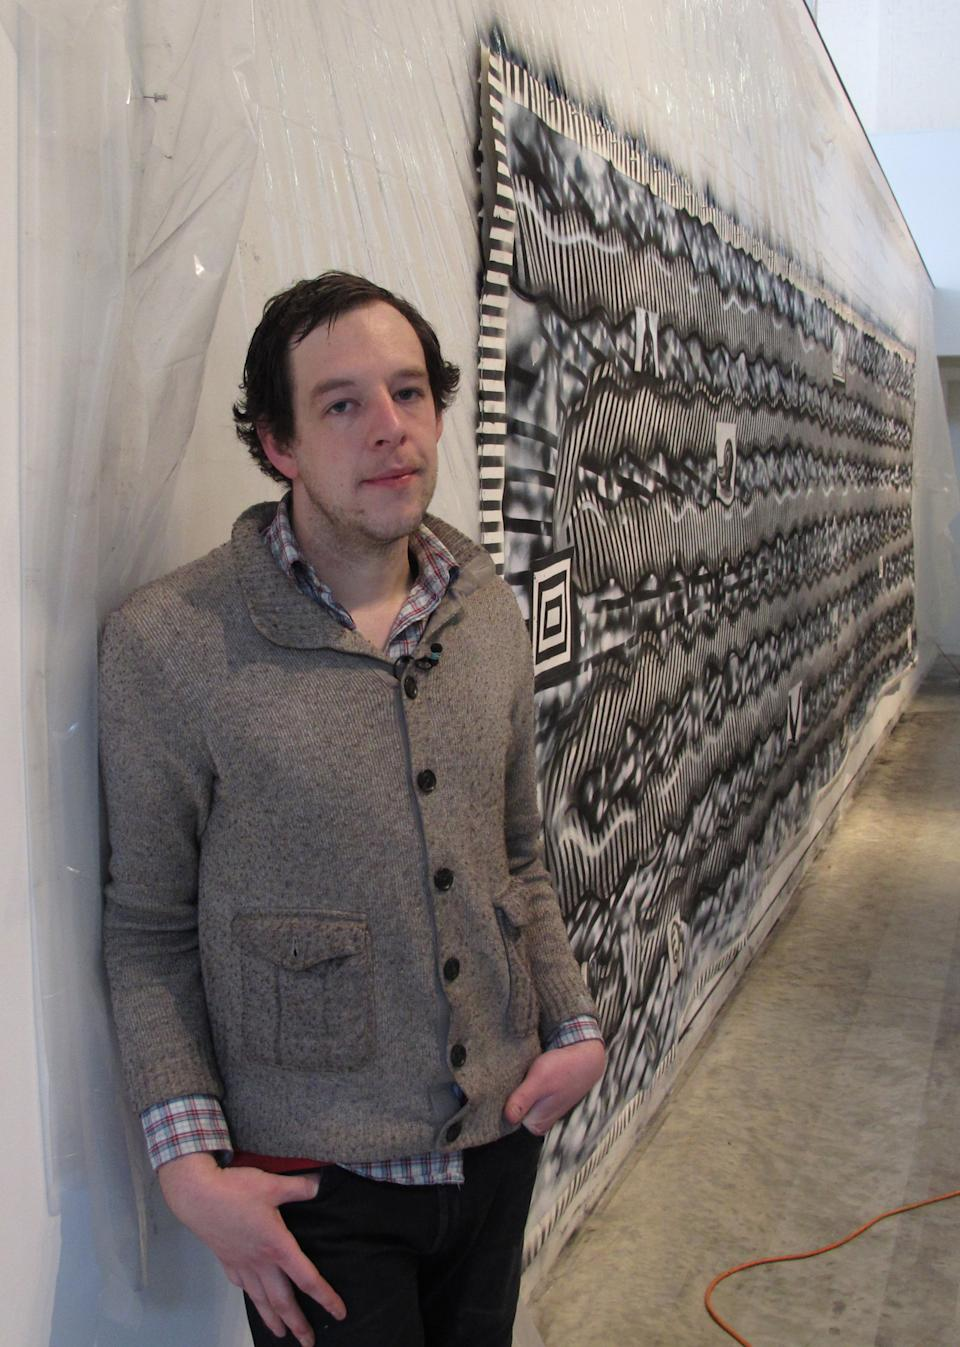 In this Wednesday, Feb. 19, 2013 photo, Ryan Travis Christian stands beside a mural he created over the course of 12 days in the emerging artist gallery at the Contemporary Art Museum in Raleigh, N.C. The Chicago artist completely reworked the wall-sized drawing several days into his first museum exhibition. (AP Photo/Allen Breed)